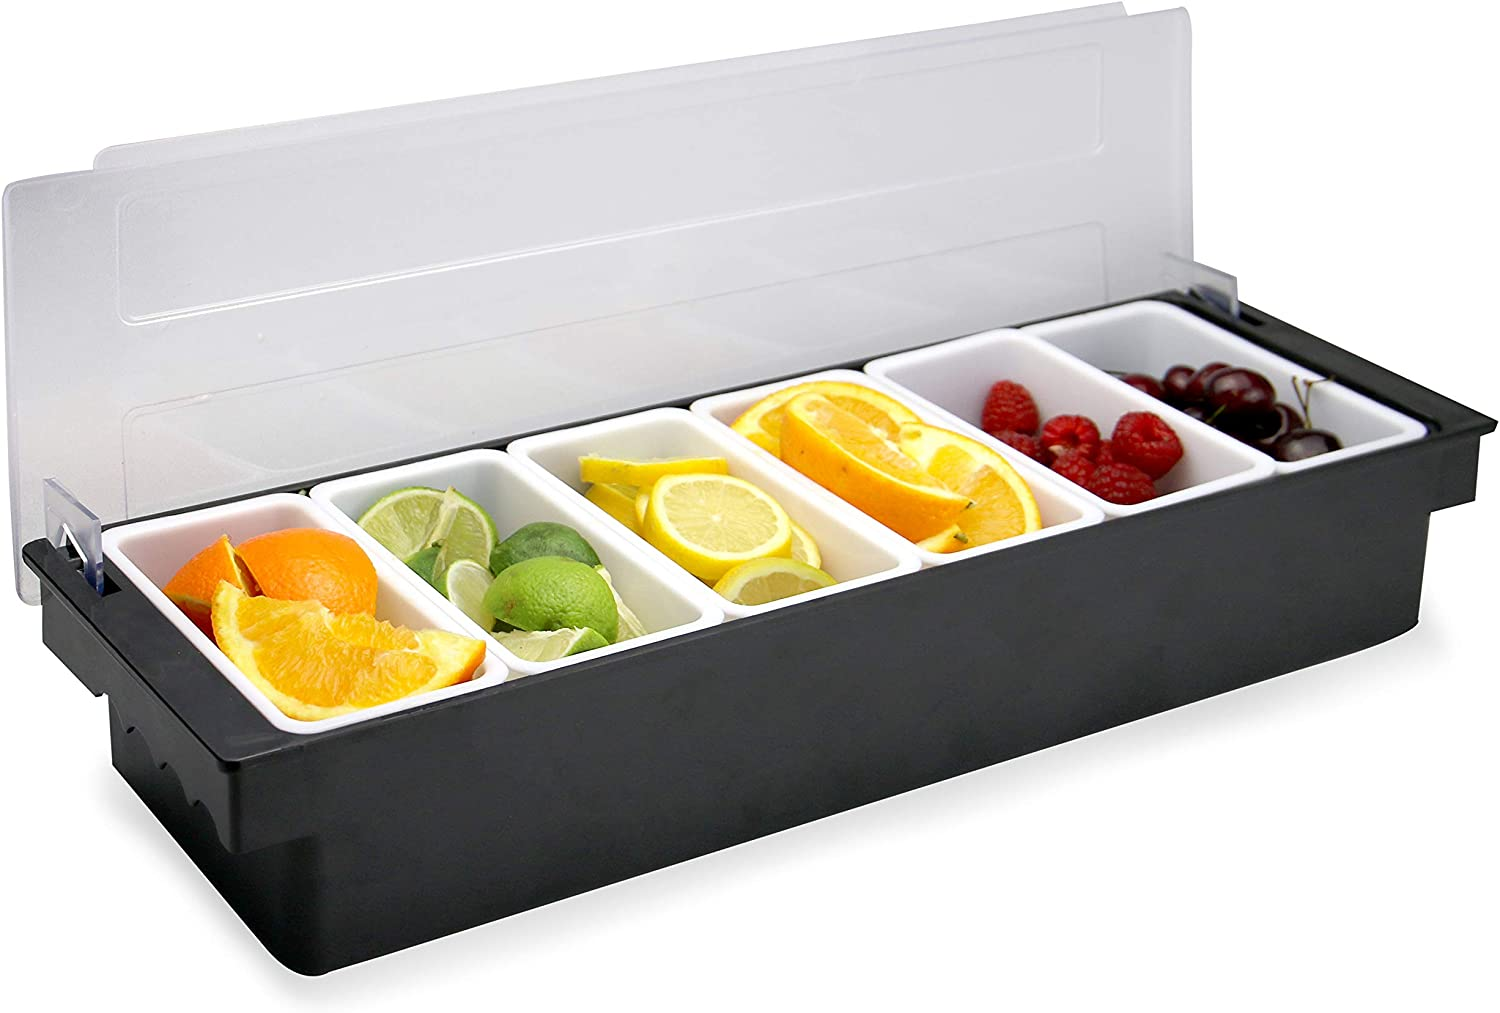 6 Compartment Condiment Dispenser Fruit Garnish Condiment Tray Bar Fruit Caddy Kitchen Ingredients Holder Pukkr Home Improvement